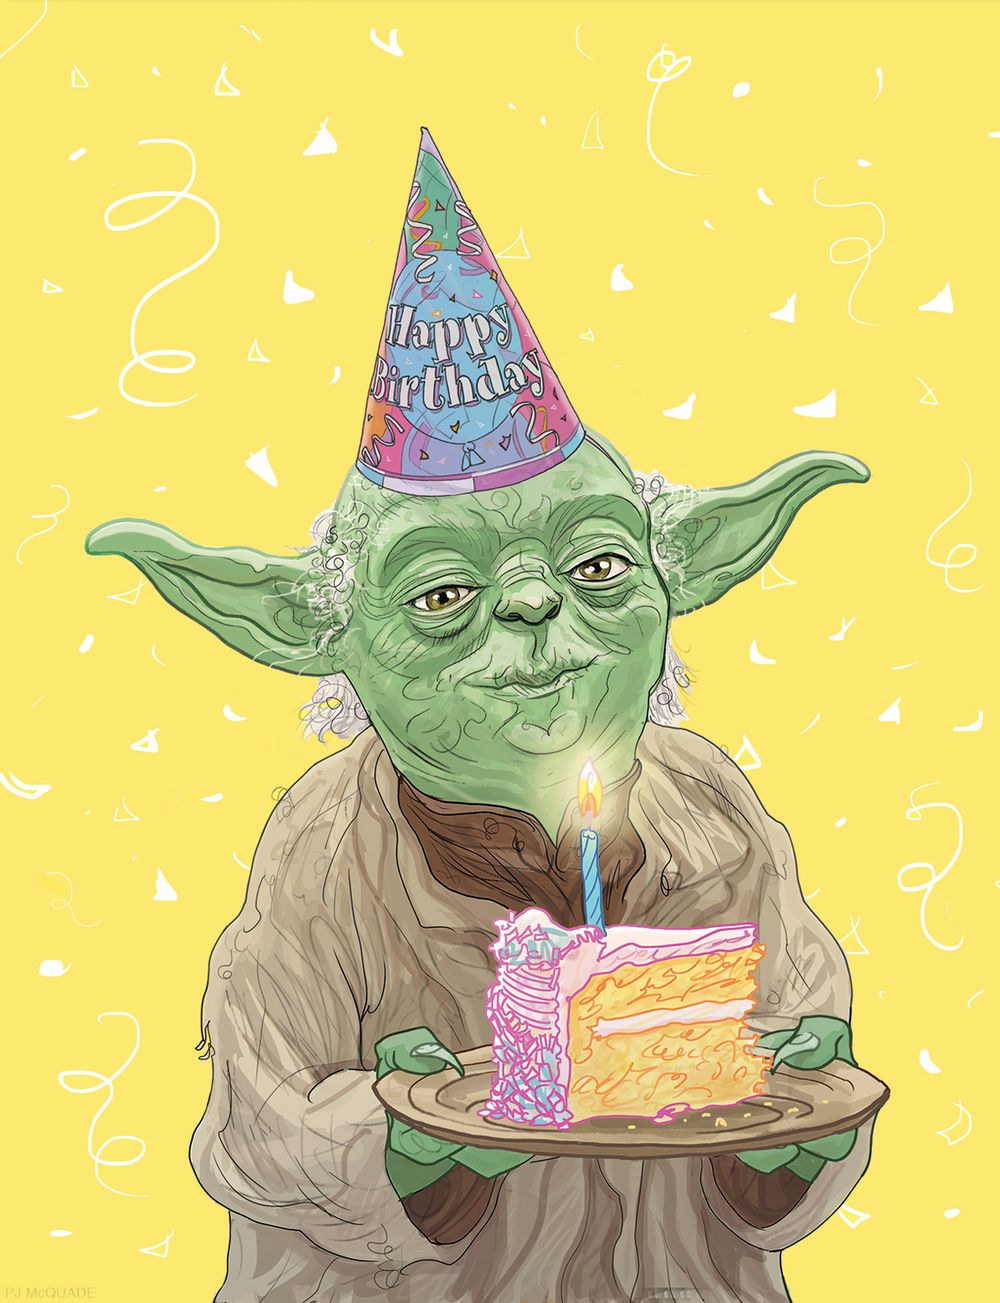 Star Wars Greeting Cards Google Search Birthday Greetings Happy Birthday Pictures Birthday Humor